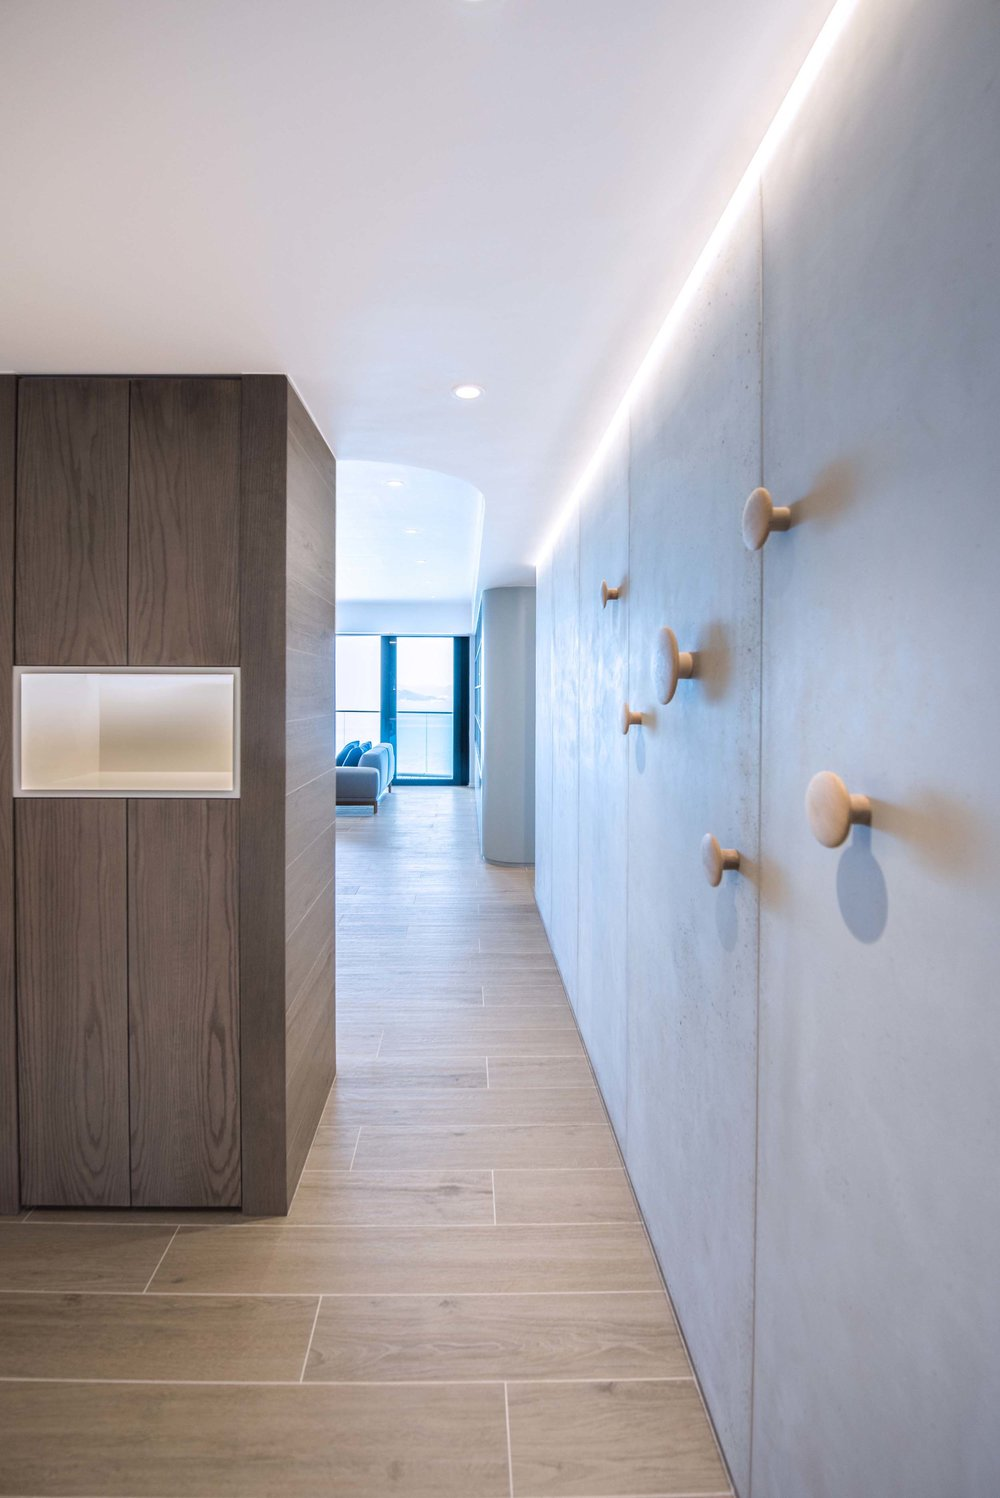 The concrete panels used in the project were prefabricated from France which could be easily cut and assembled quickly, cutting down on site construction time. A long continuous LED light strip accentuate the concrete panels, controlled by the overall scene lighting control system for the apartment.